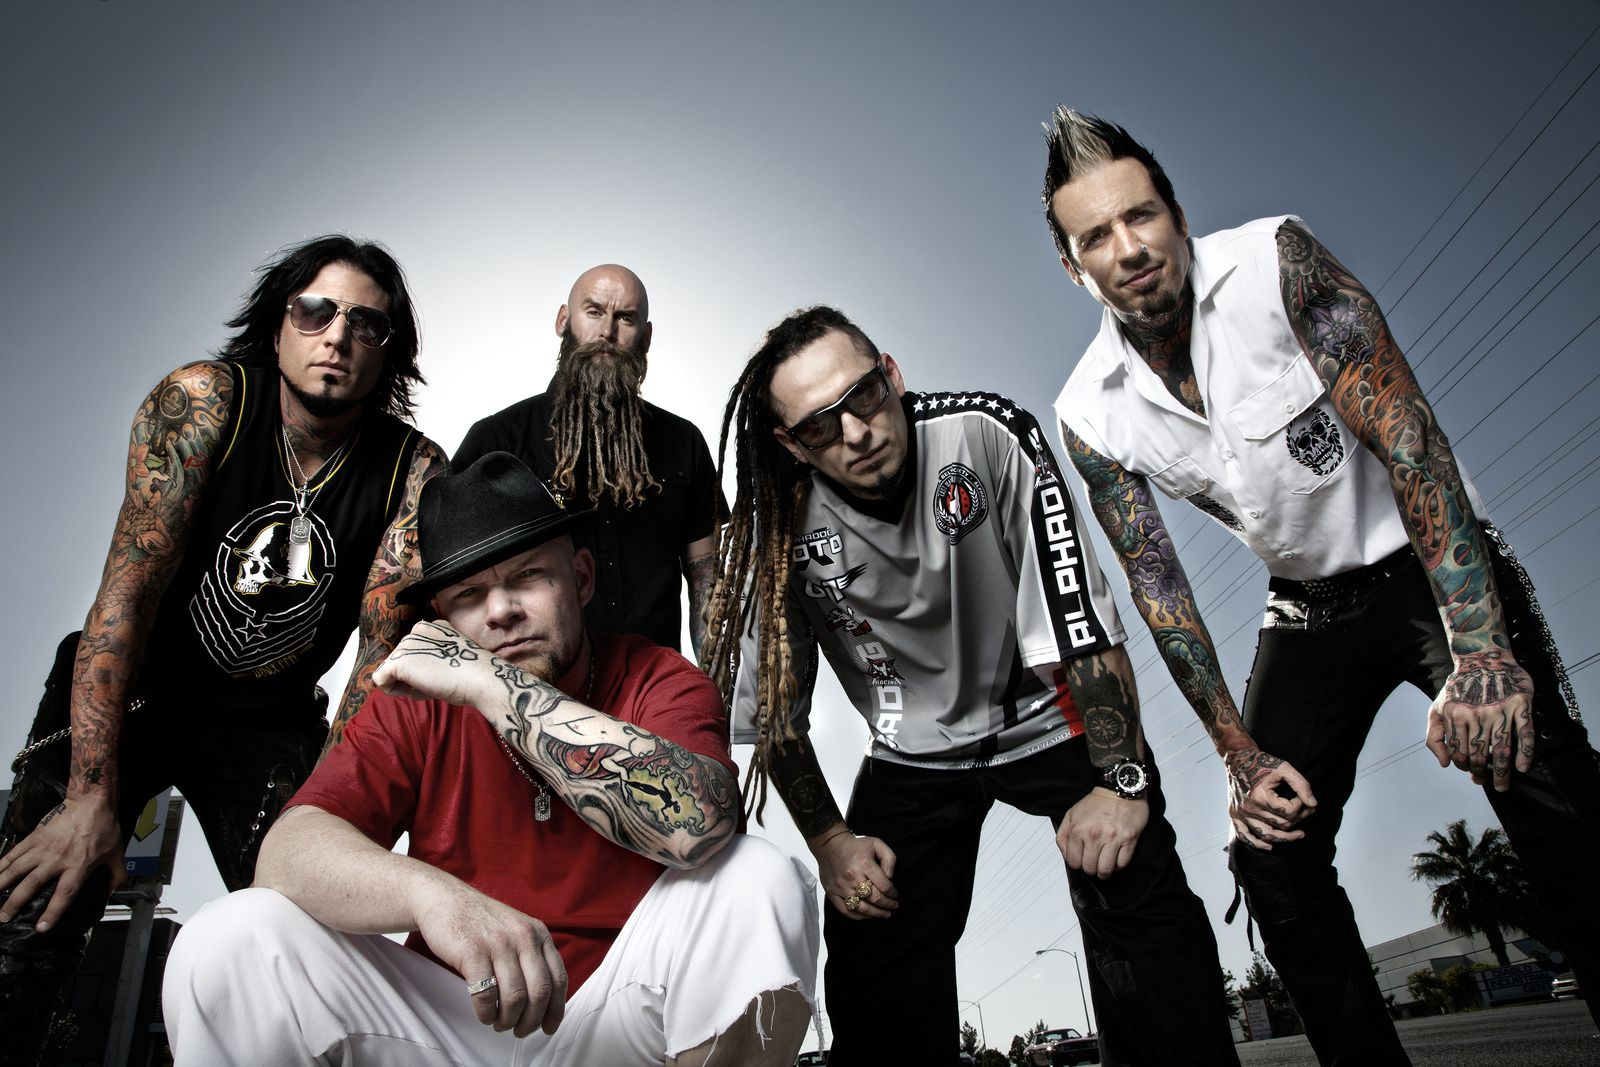 FIVE FINGER DEATH PUNCH annule son concert de demain soir à l'Olympia